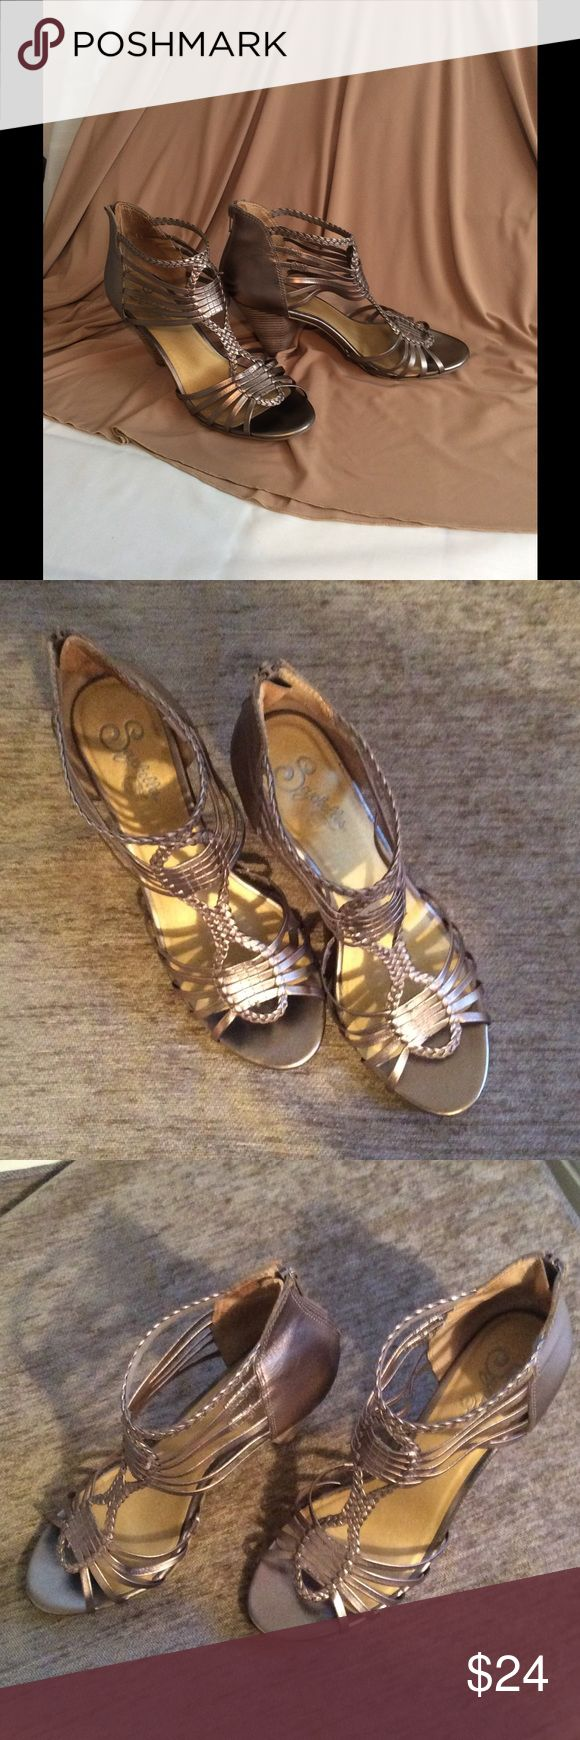 """Seychelles metallic heeled sandals Loved and gently worn 3"""" heel sandals. Scychelles Shoes Sandals"""